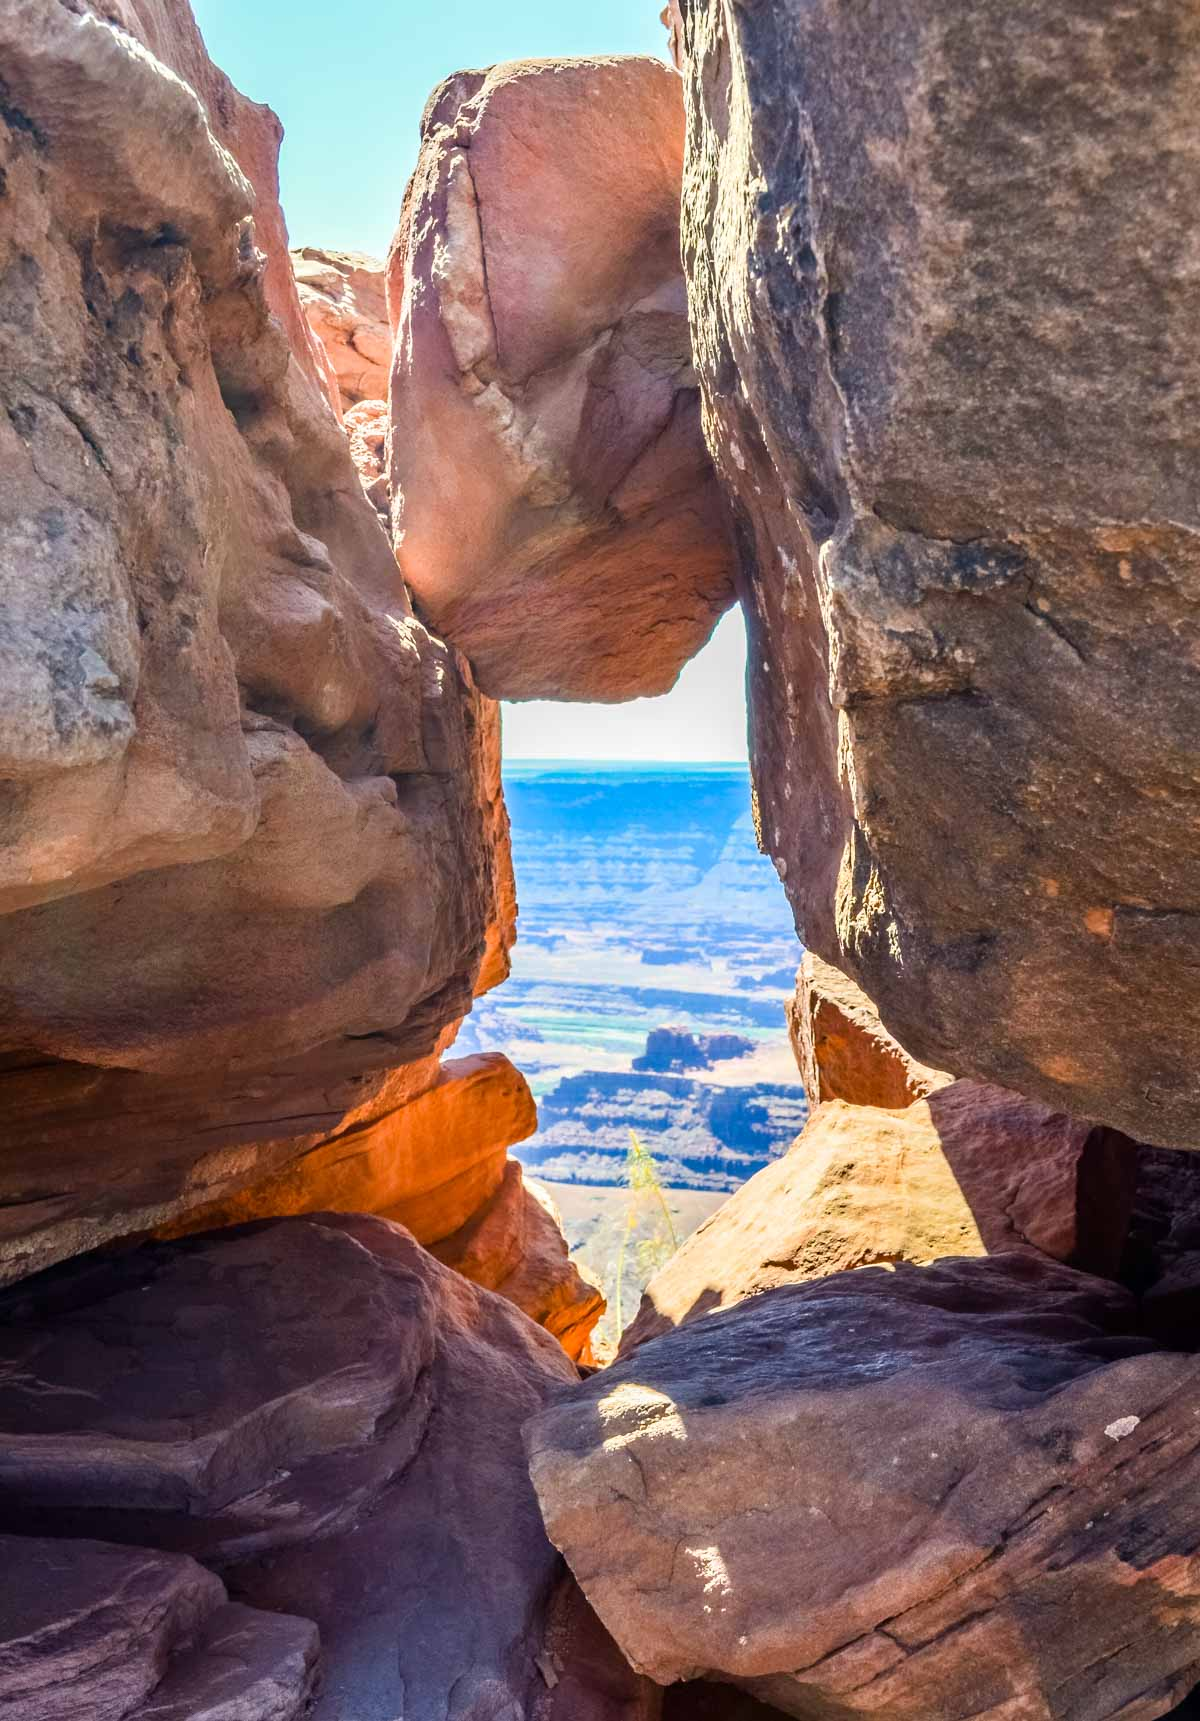 window through the rocks at dead horse point